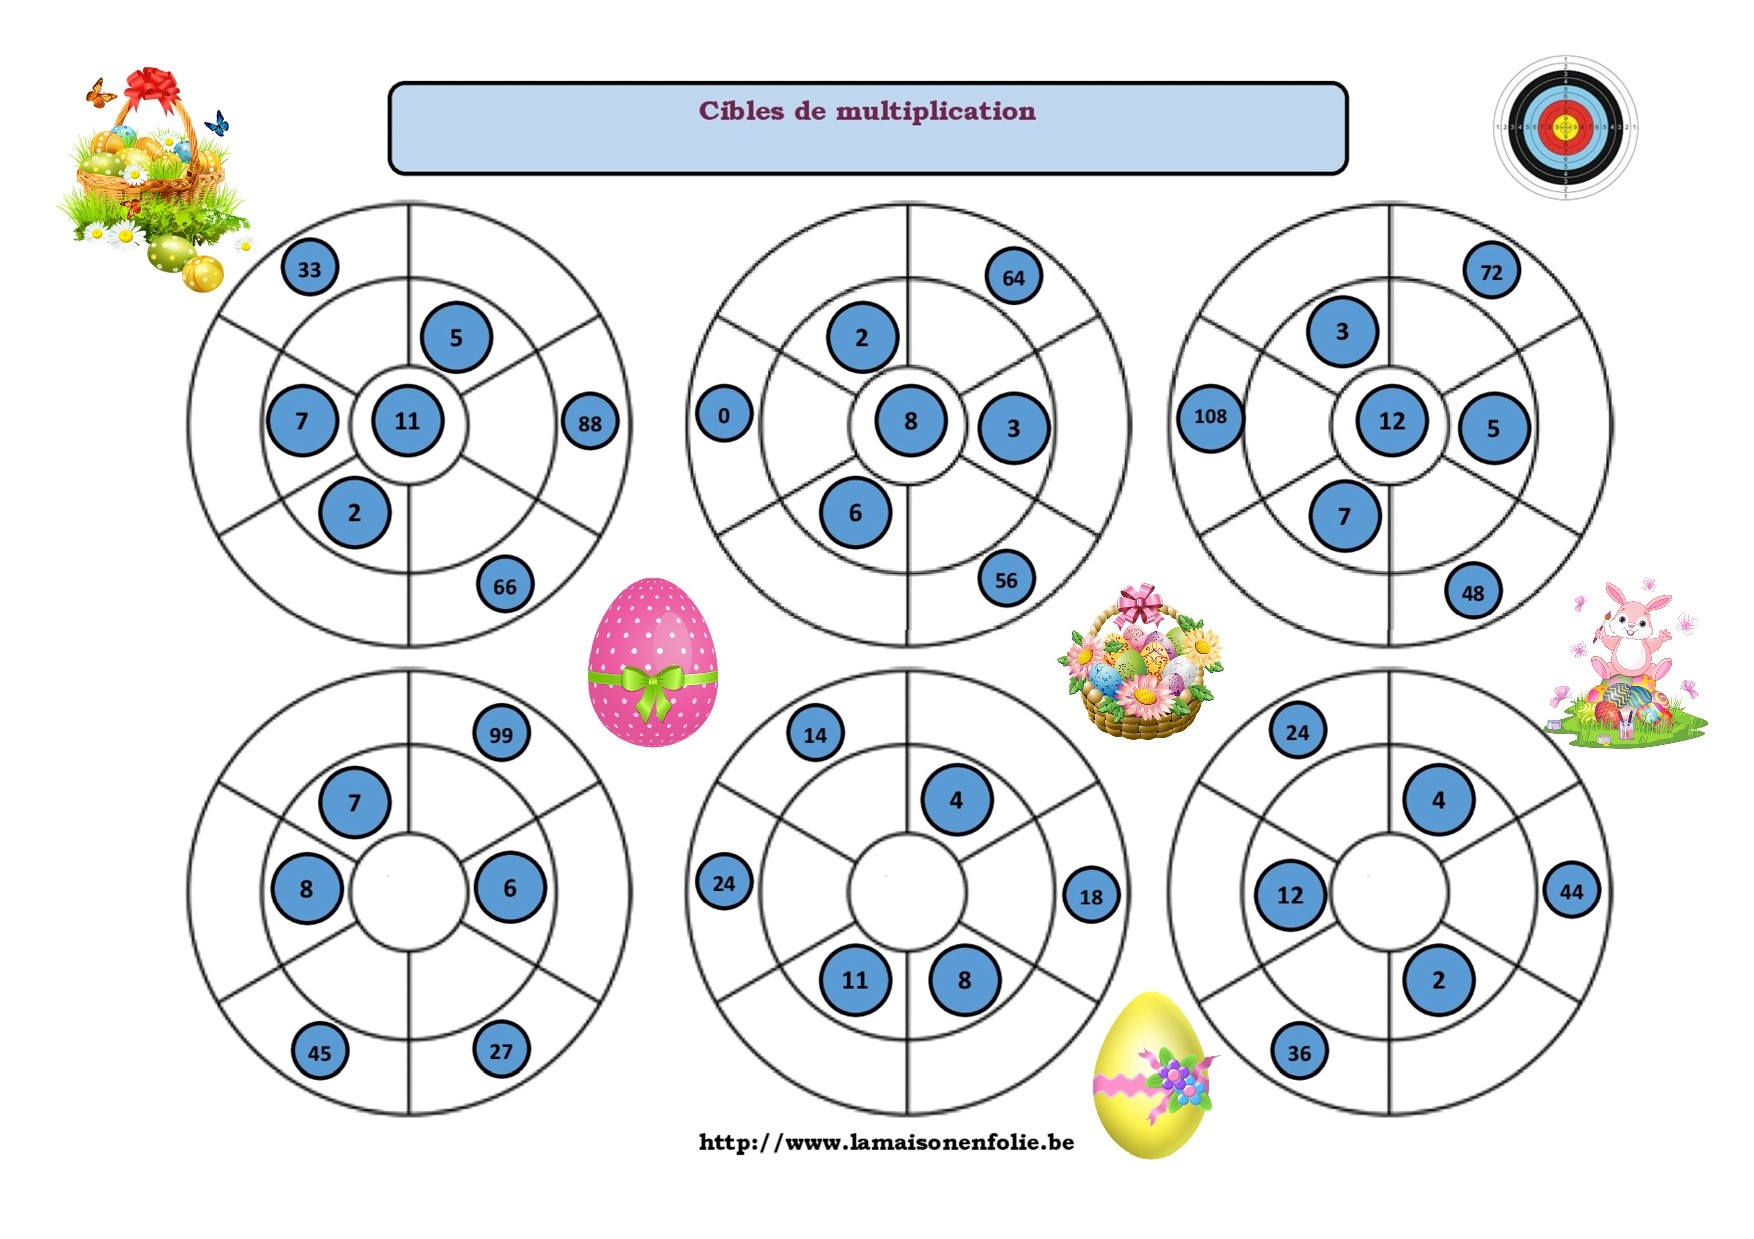 Cibles de multiplication 4